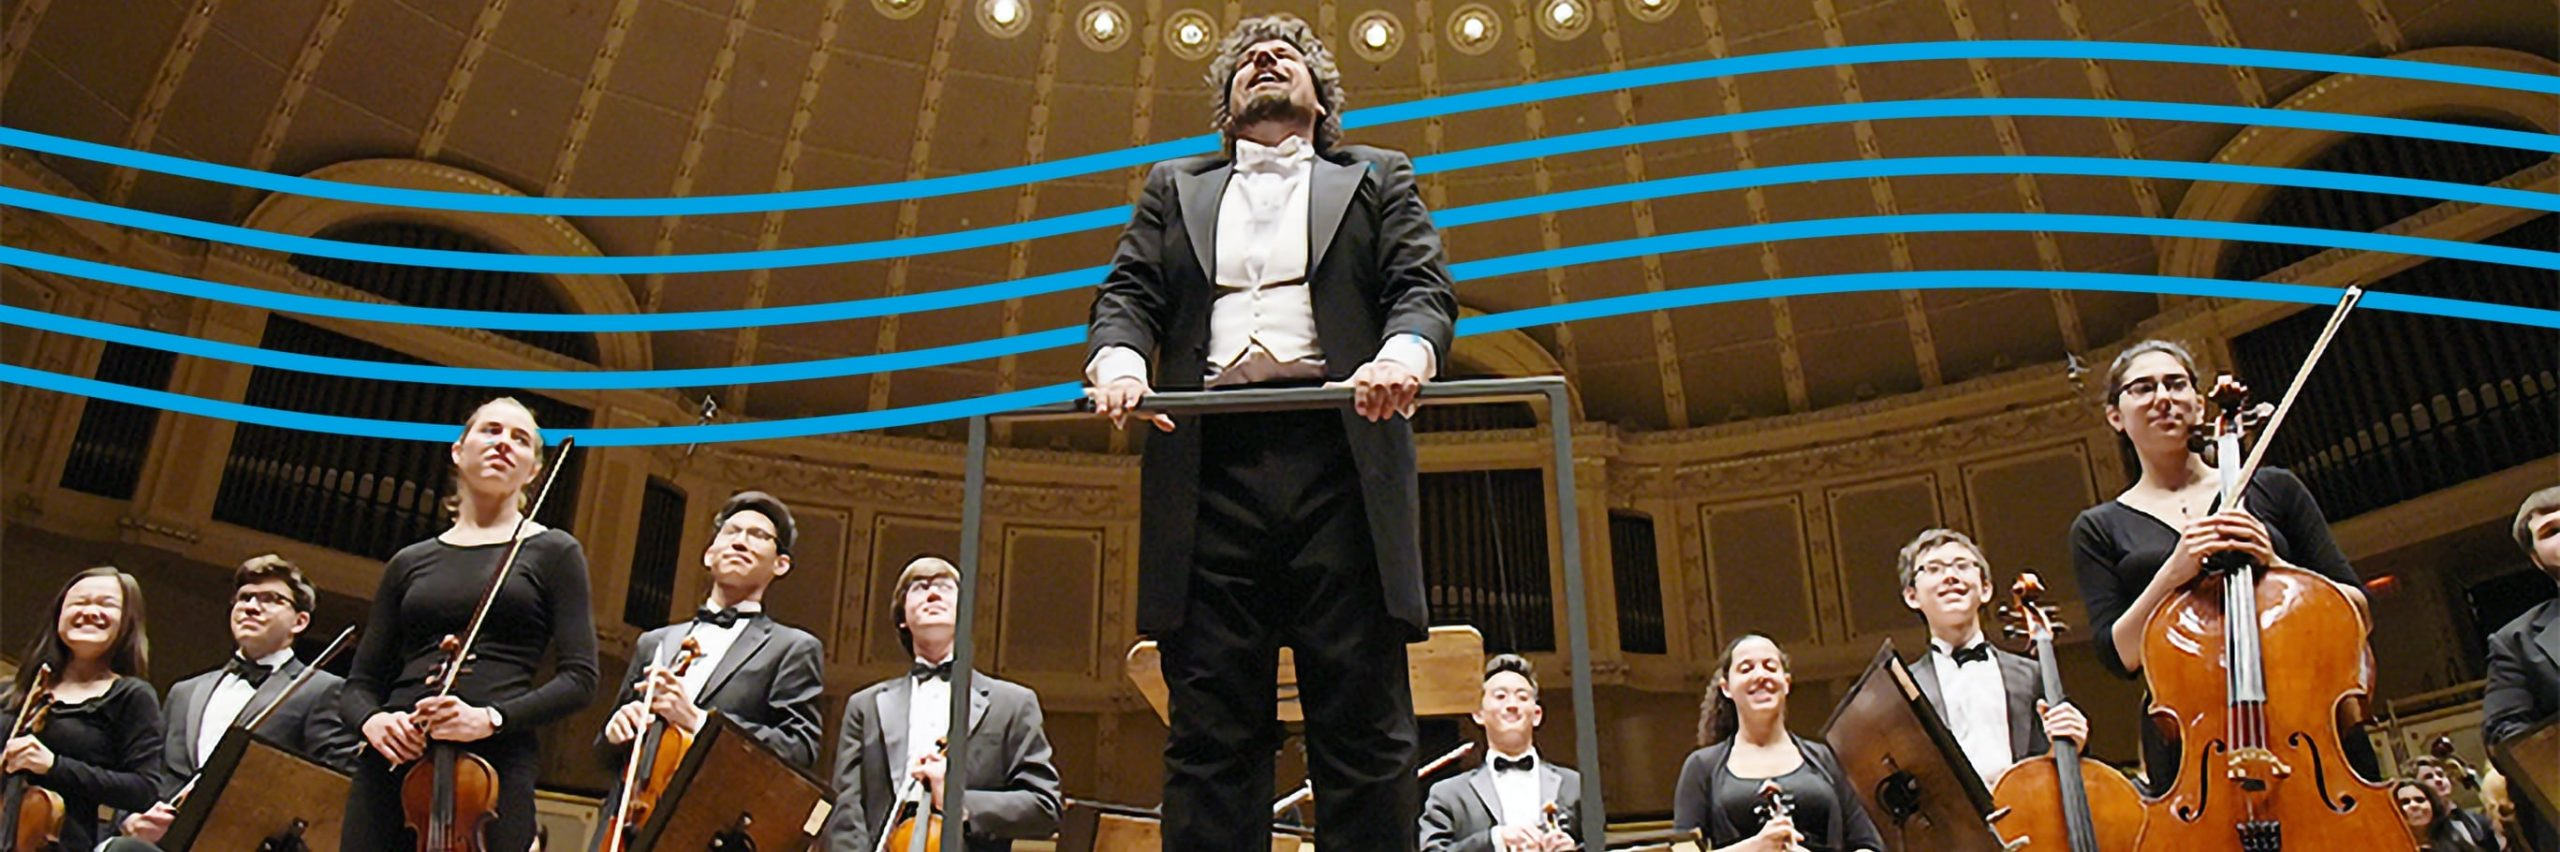 Photograph looking up at a stage with the conductor in the center surrounded by high-school-aged musicians standing with their instruments at the end of a performance